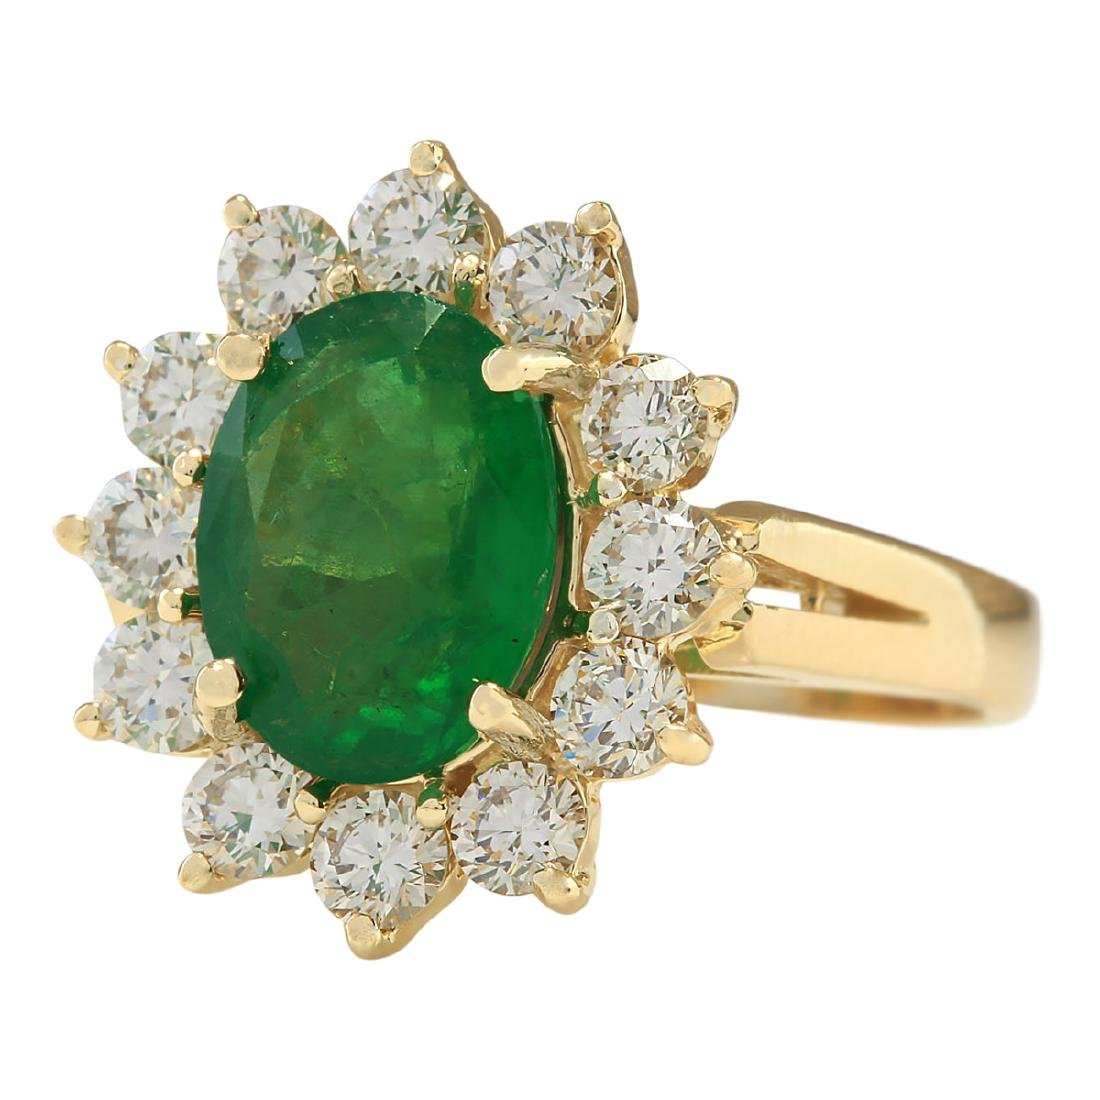 3.34 CTW Natural Emerald And Diamond Ring In 18K Yellow - 2